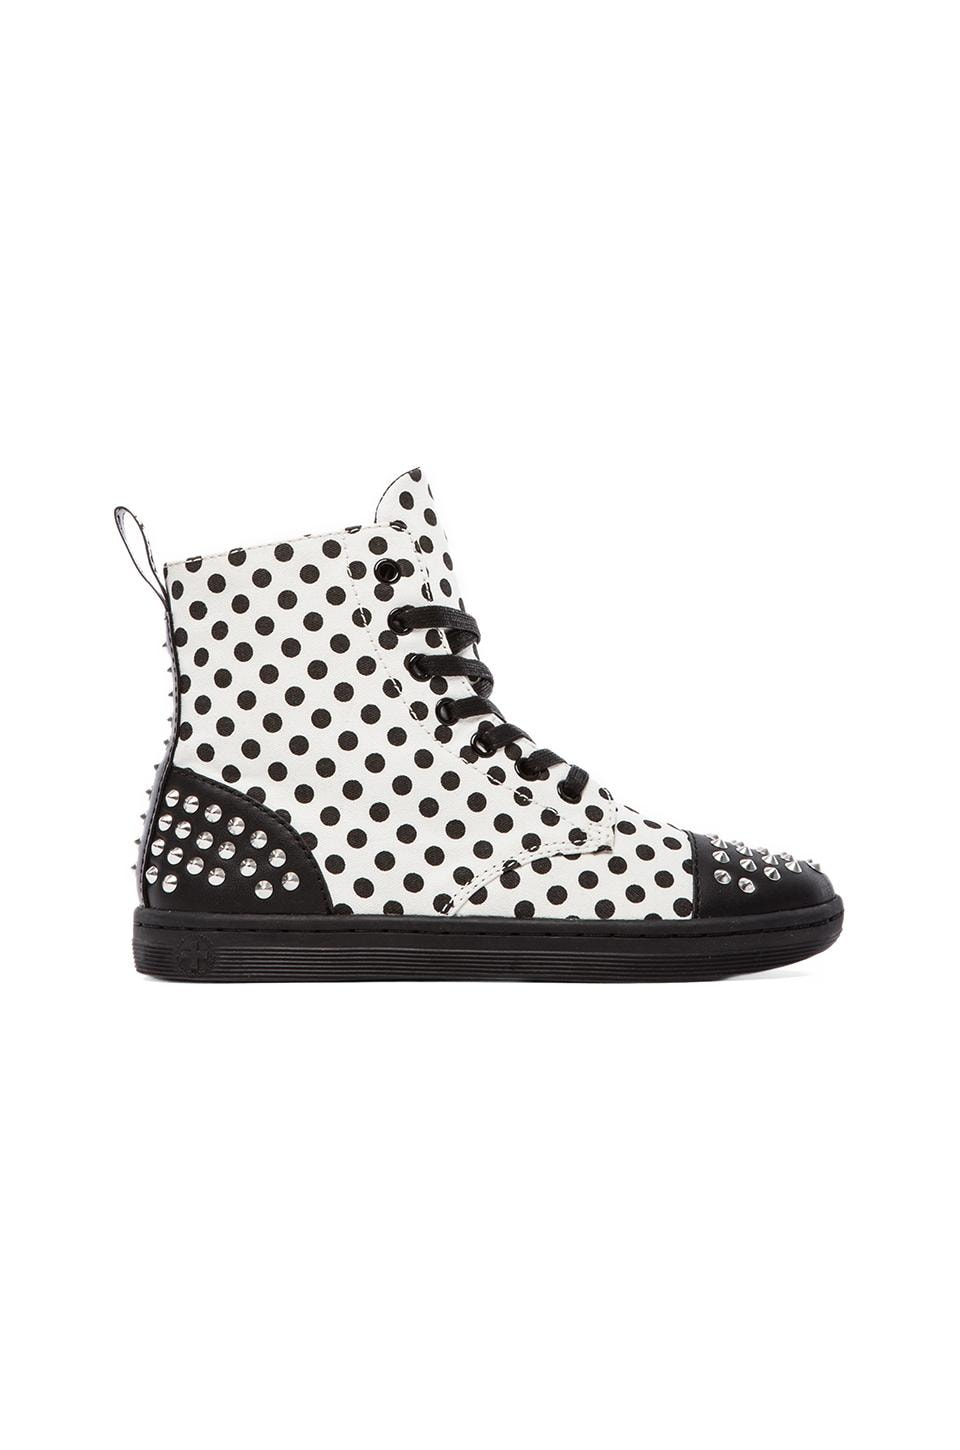 Dr. Martens Hackstud 7-Eye Boot in Black & White